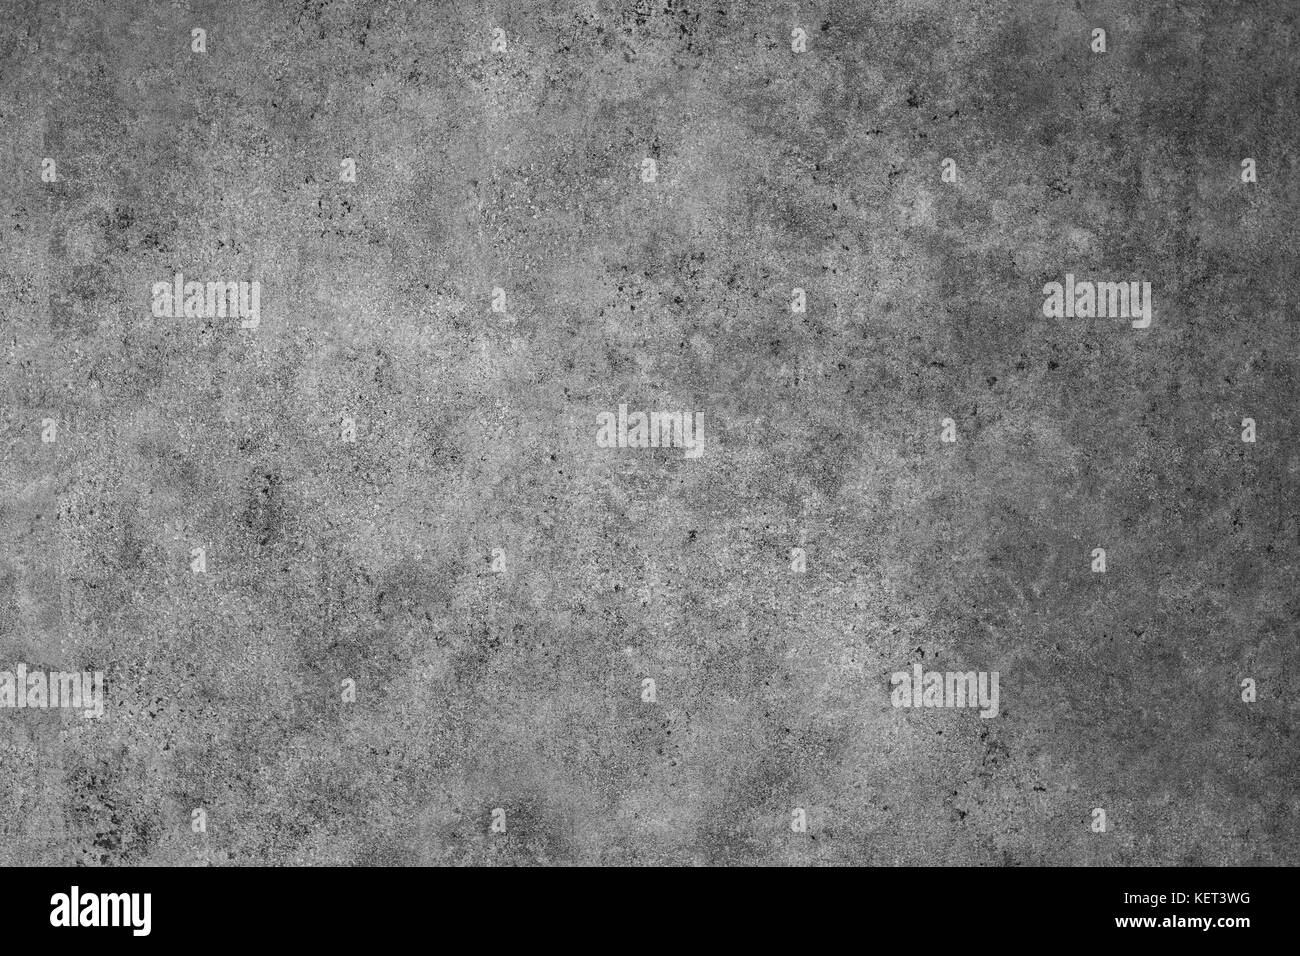 Polished old grey concrete floor texture background. - Stock Image